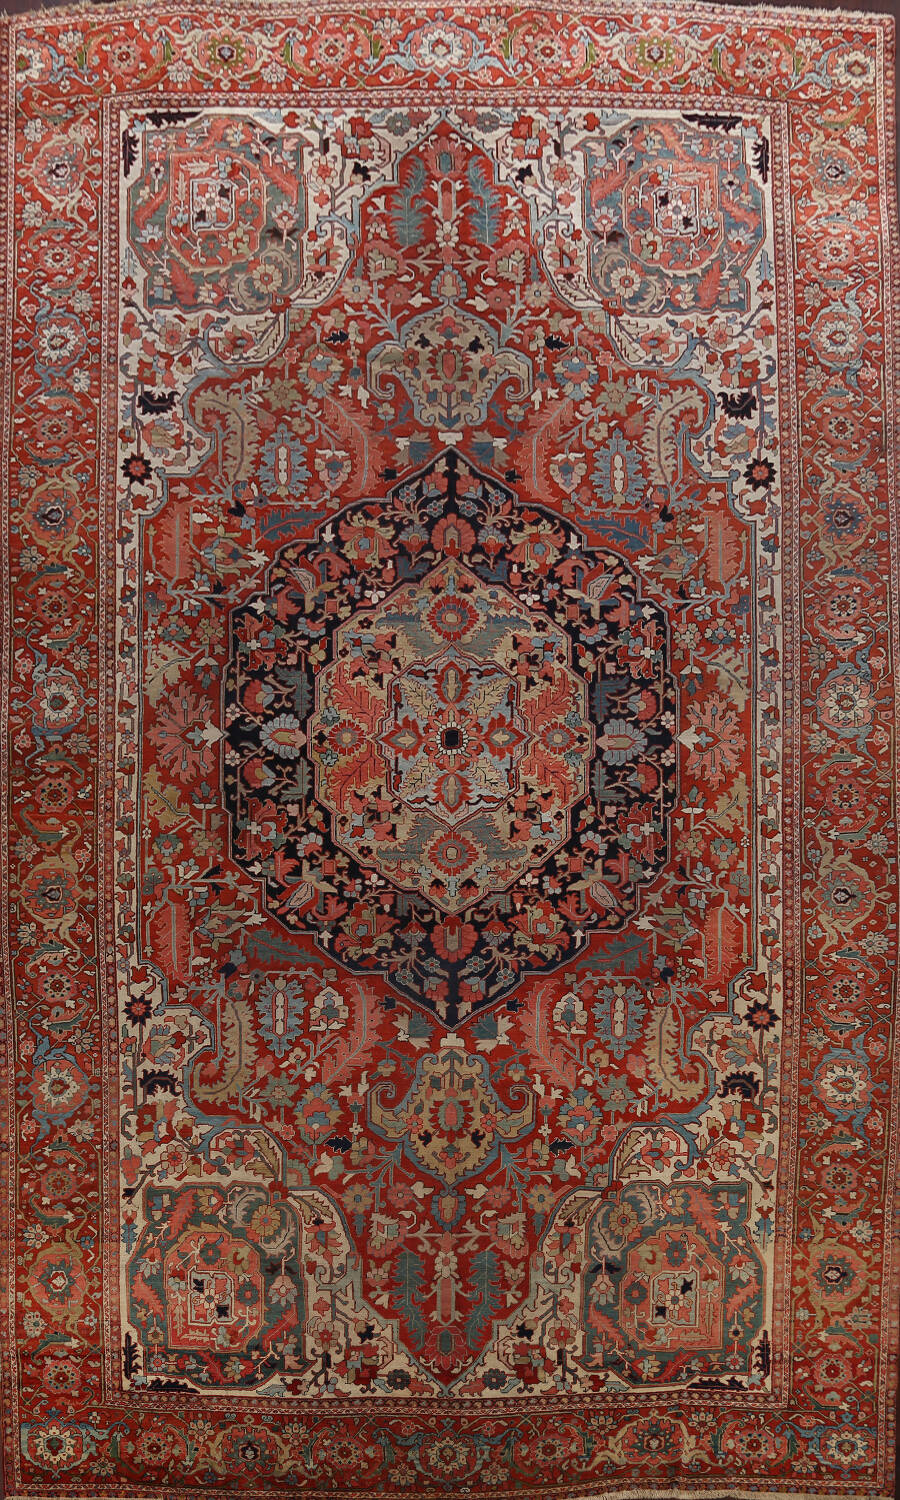 Antique Heriz Serapi Vegetable Dye Persian Area Rug 12x19 image 1